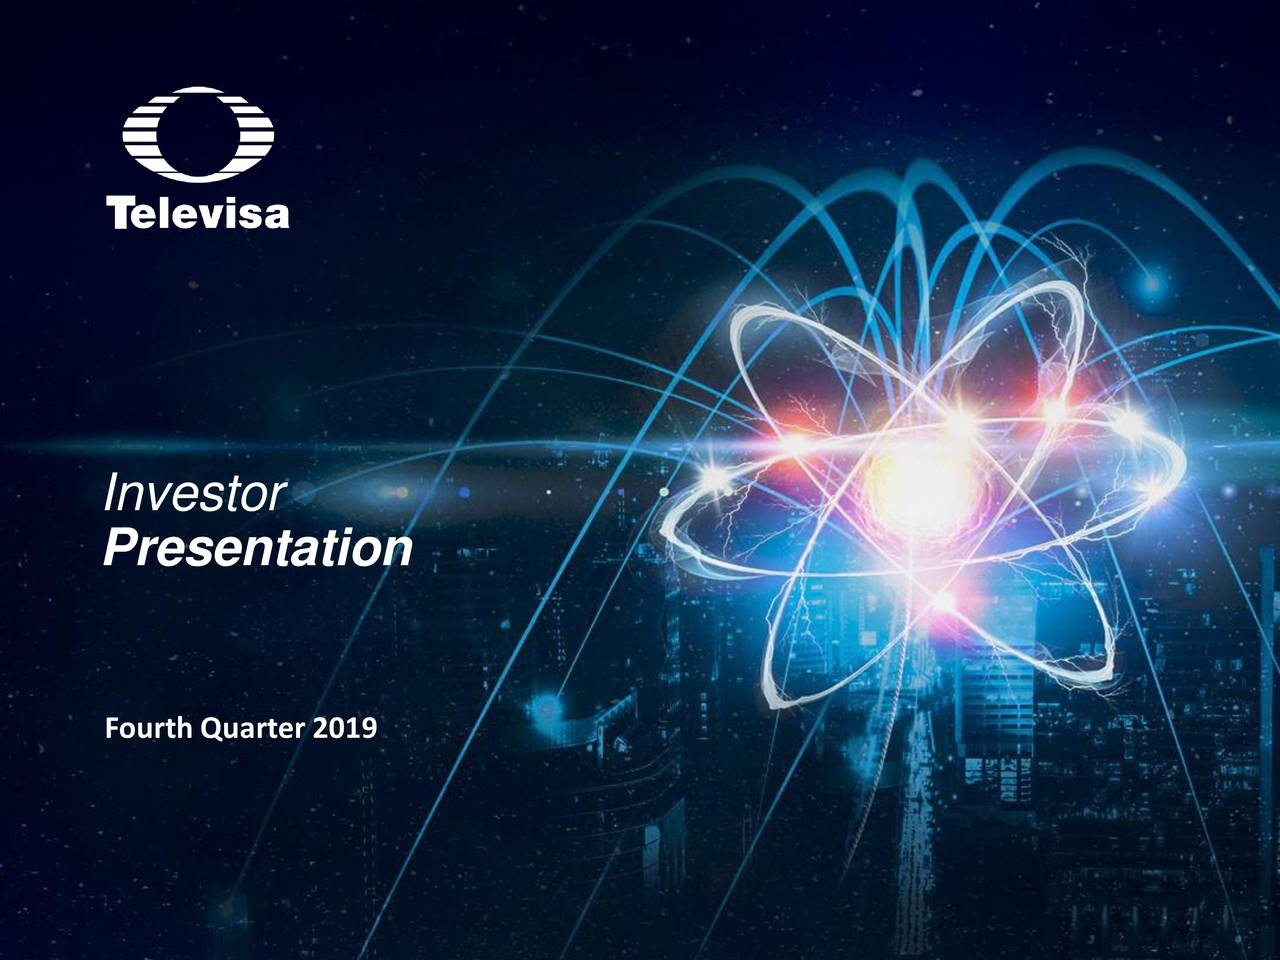 Grupo Televisa, S.A.B. 2019 Q4 - Results - Earnings Call Presentation - Grupo Televisa, S.A.B. (NYSE:TV) | Seeking Alpha